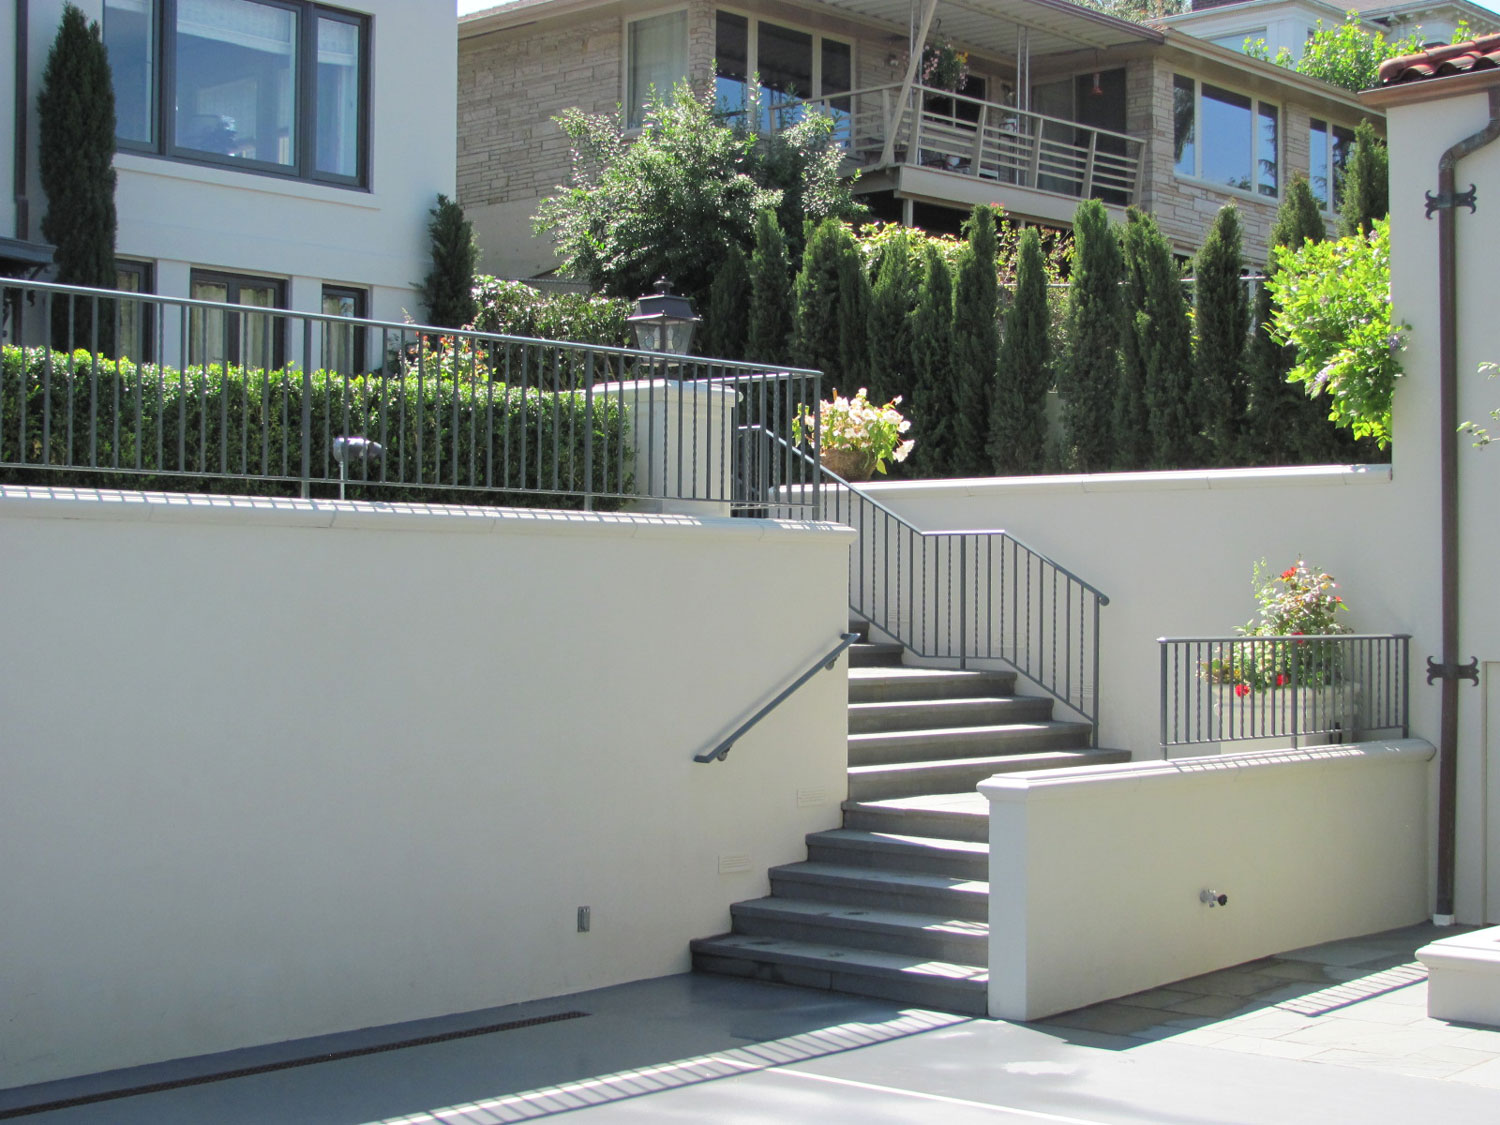 Iron Handrails and Guardrails for Slate Patio - Corner Stairs - Seattle, WA